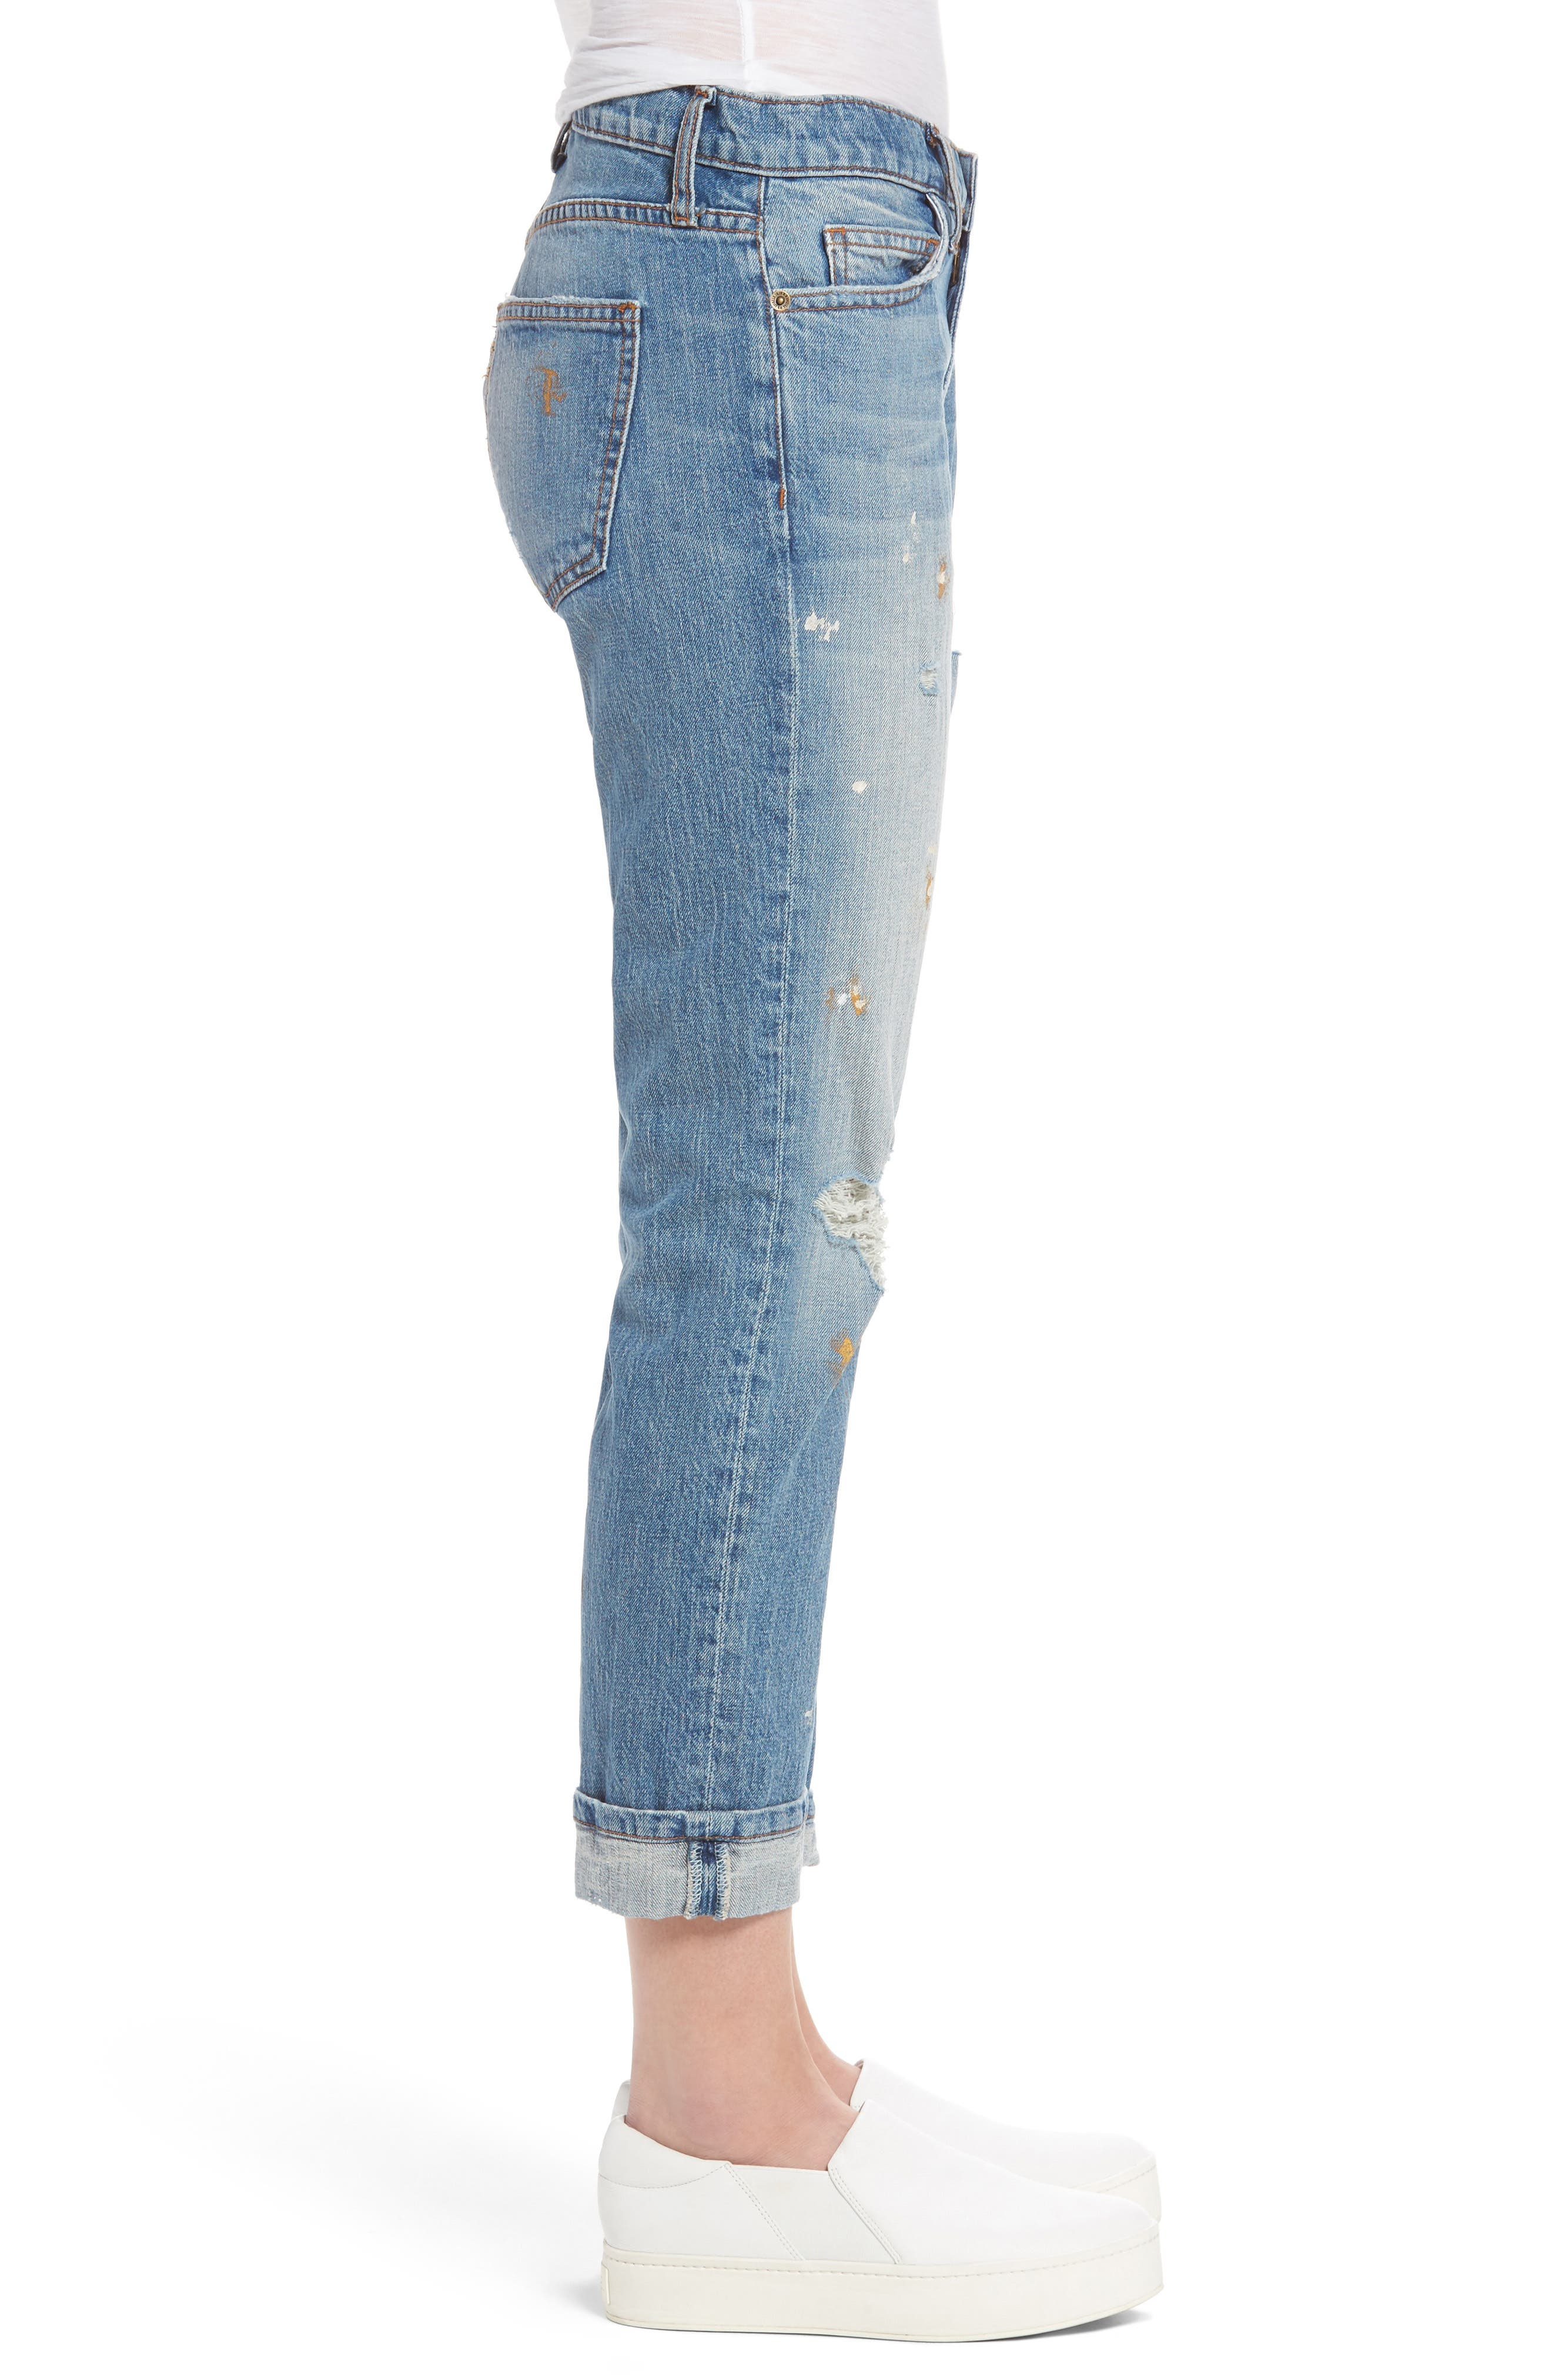 Fling Distressed Rolled Jeans,                             Alternate thumbnail 3, color,                             469